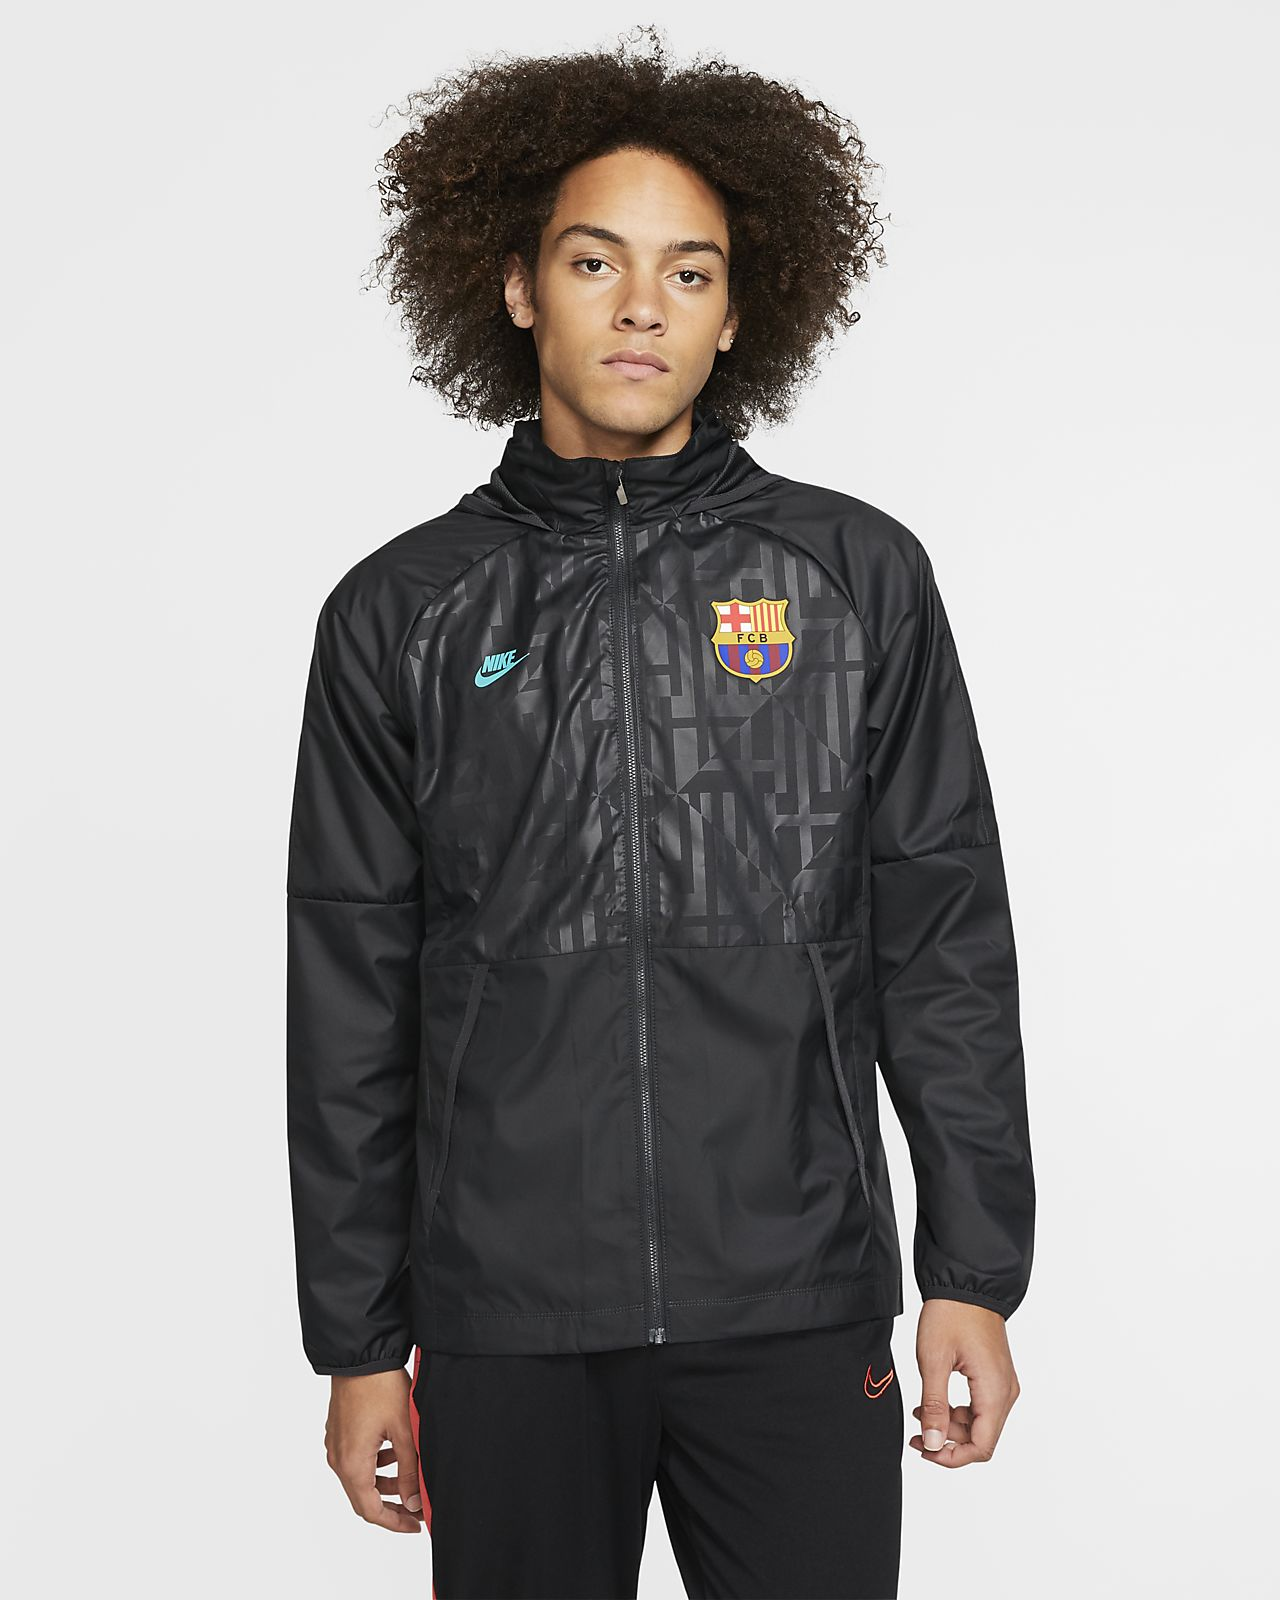 FC Barcelona Men's Football Jacket